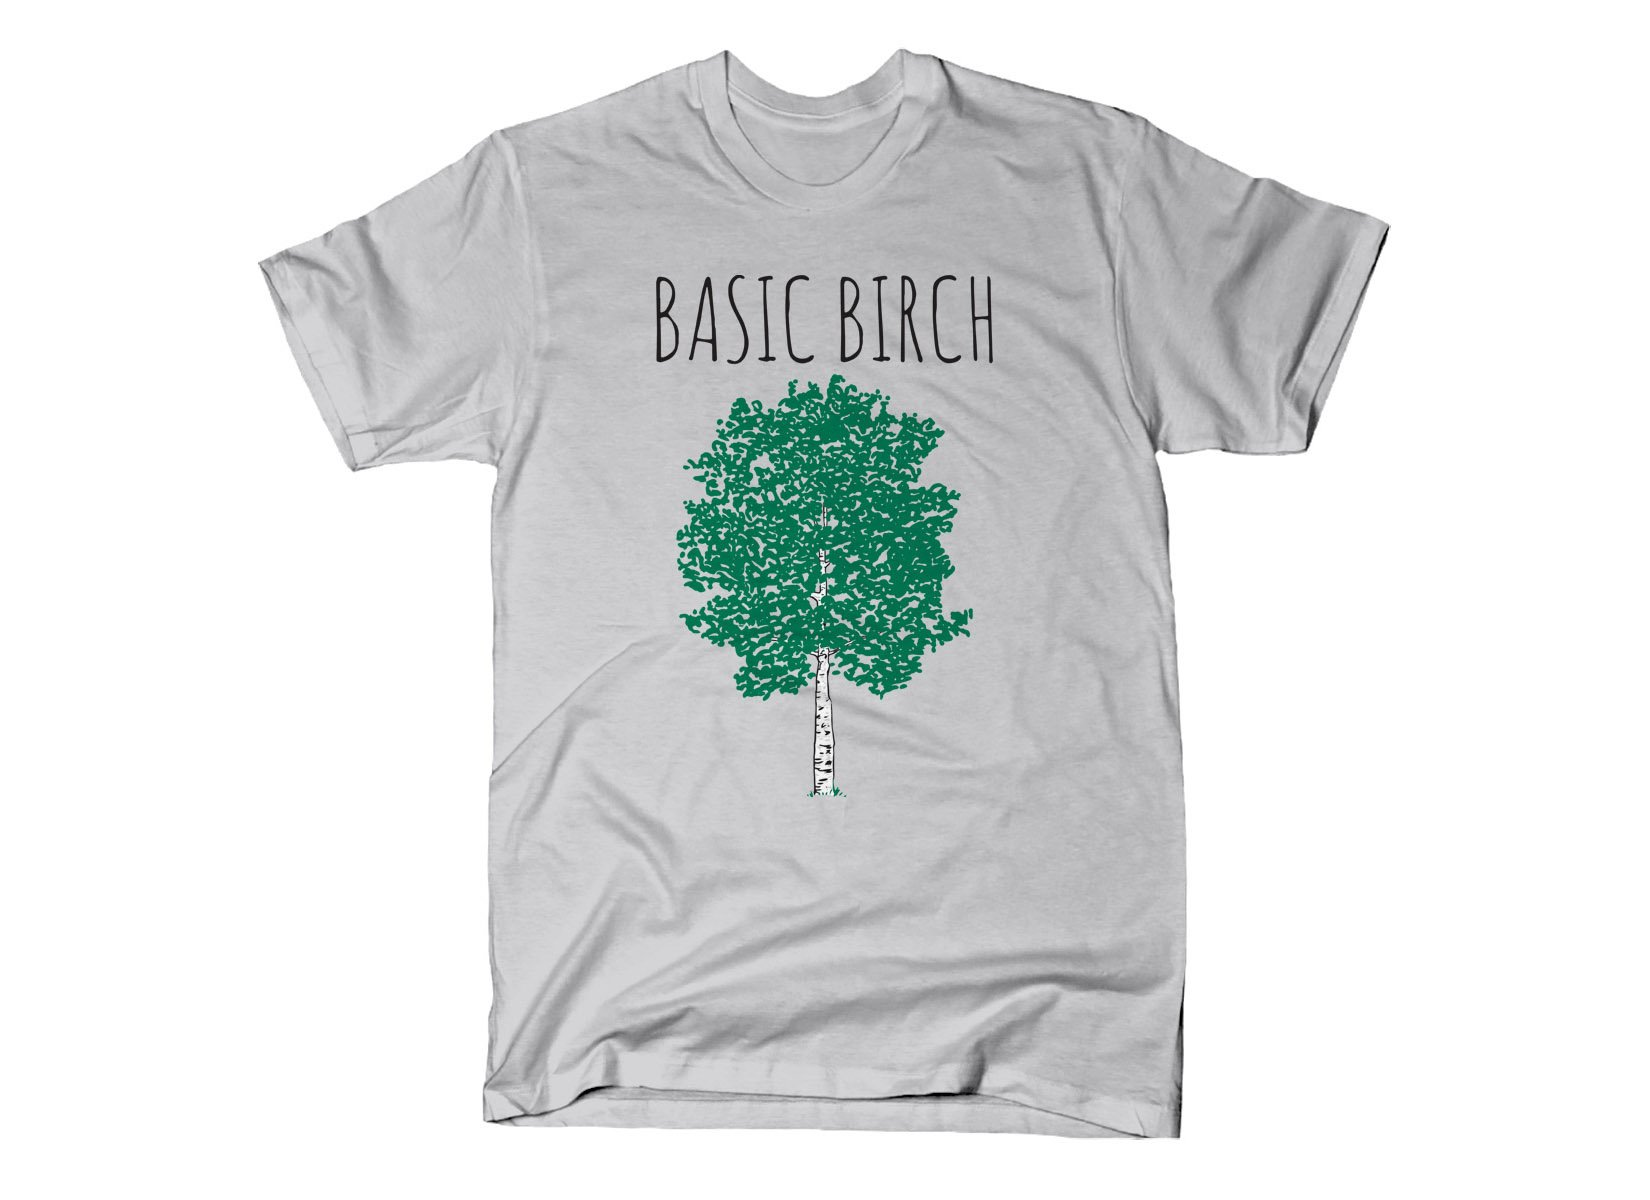 Basic Birch on Mens T-Shirt